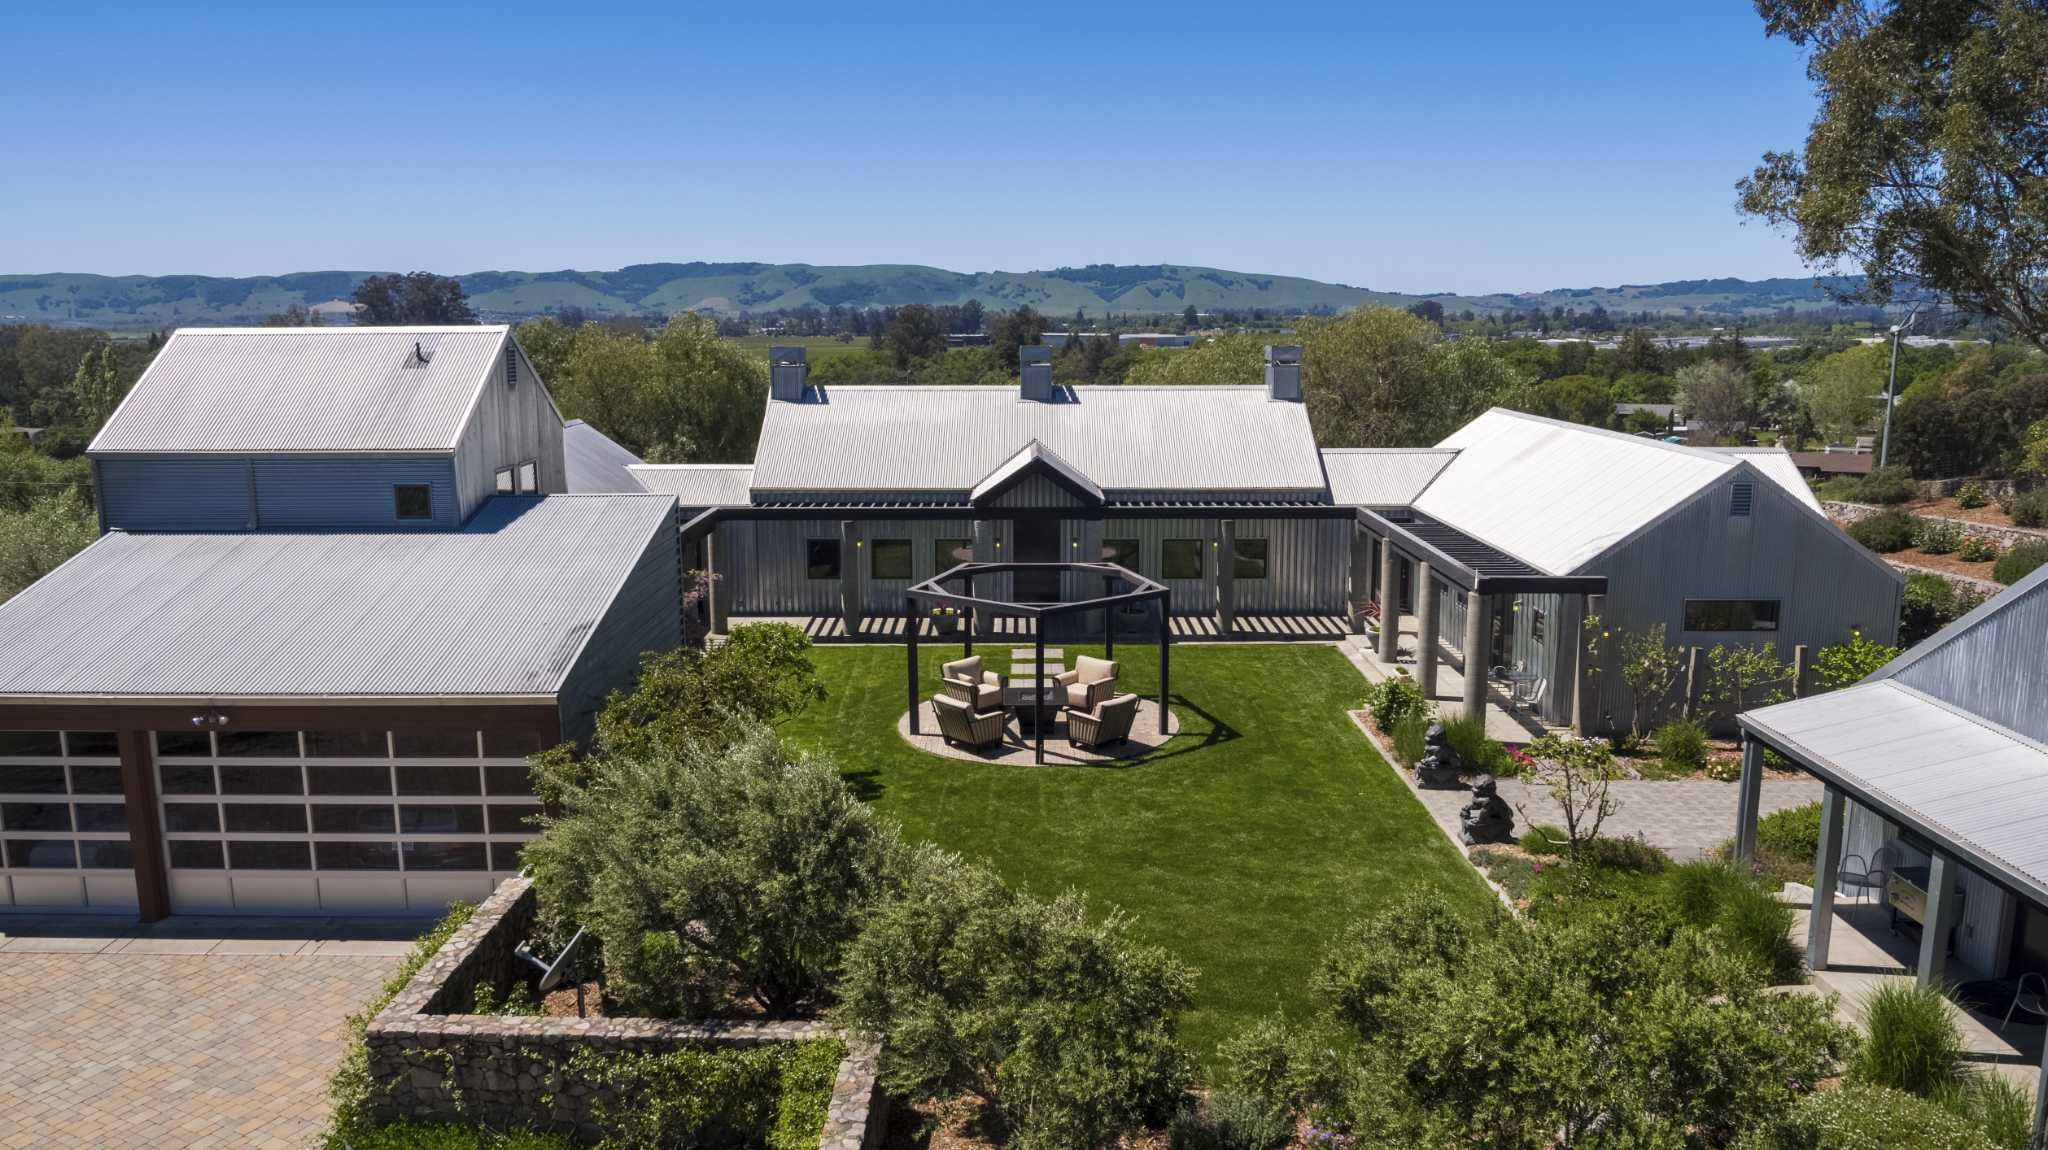 Walk Through Enticing Outdoor Spaces Highlight Wine Country